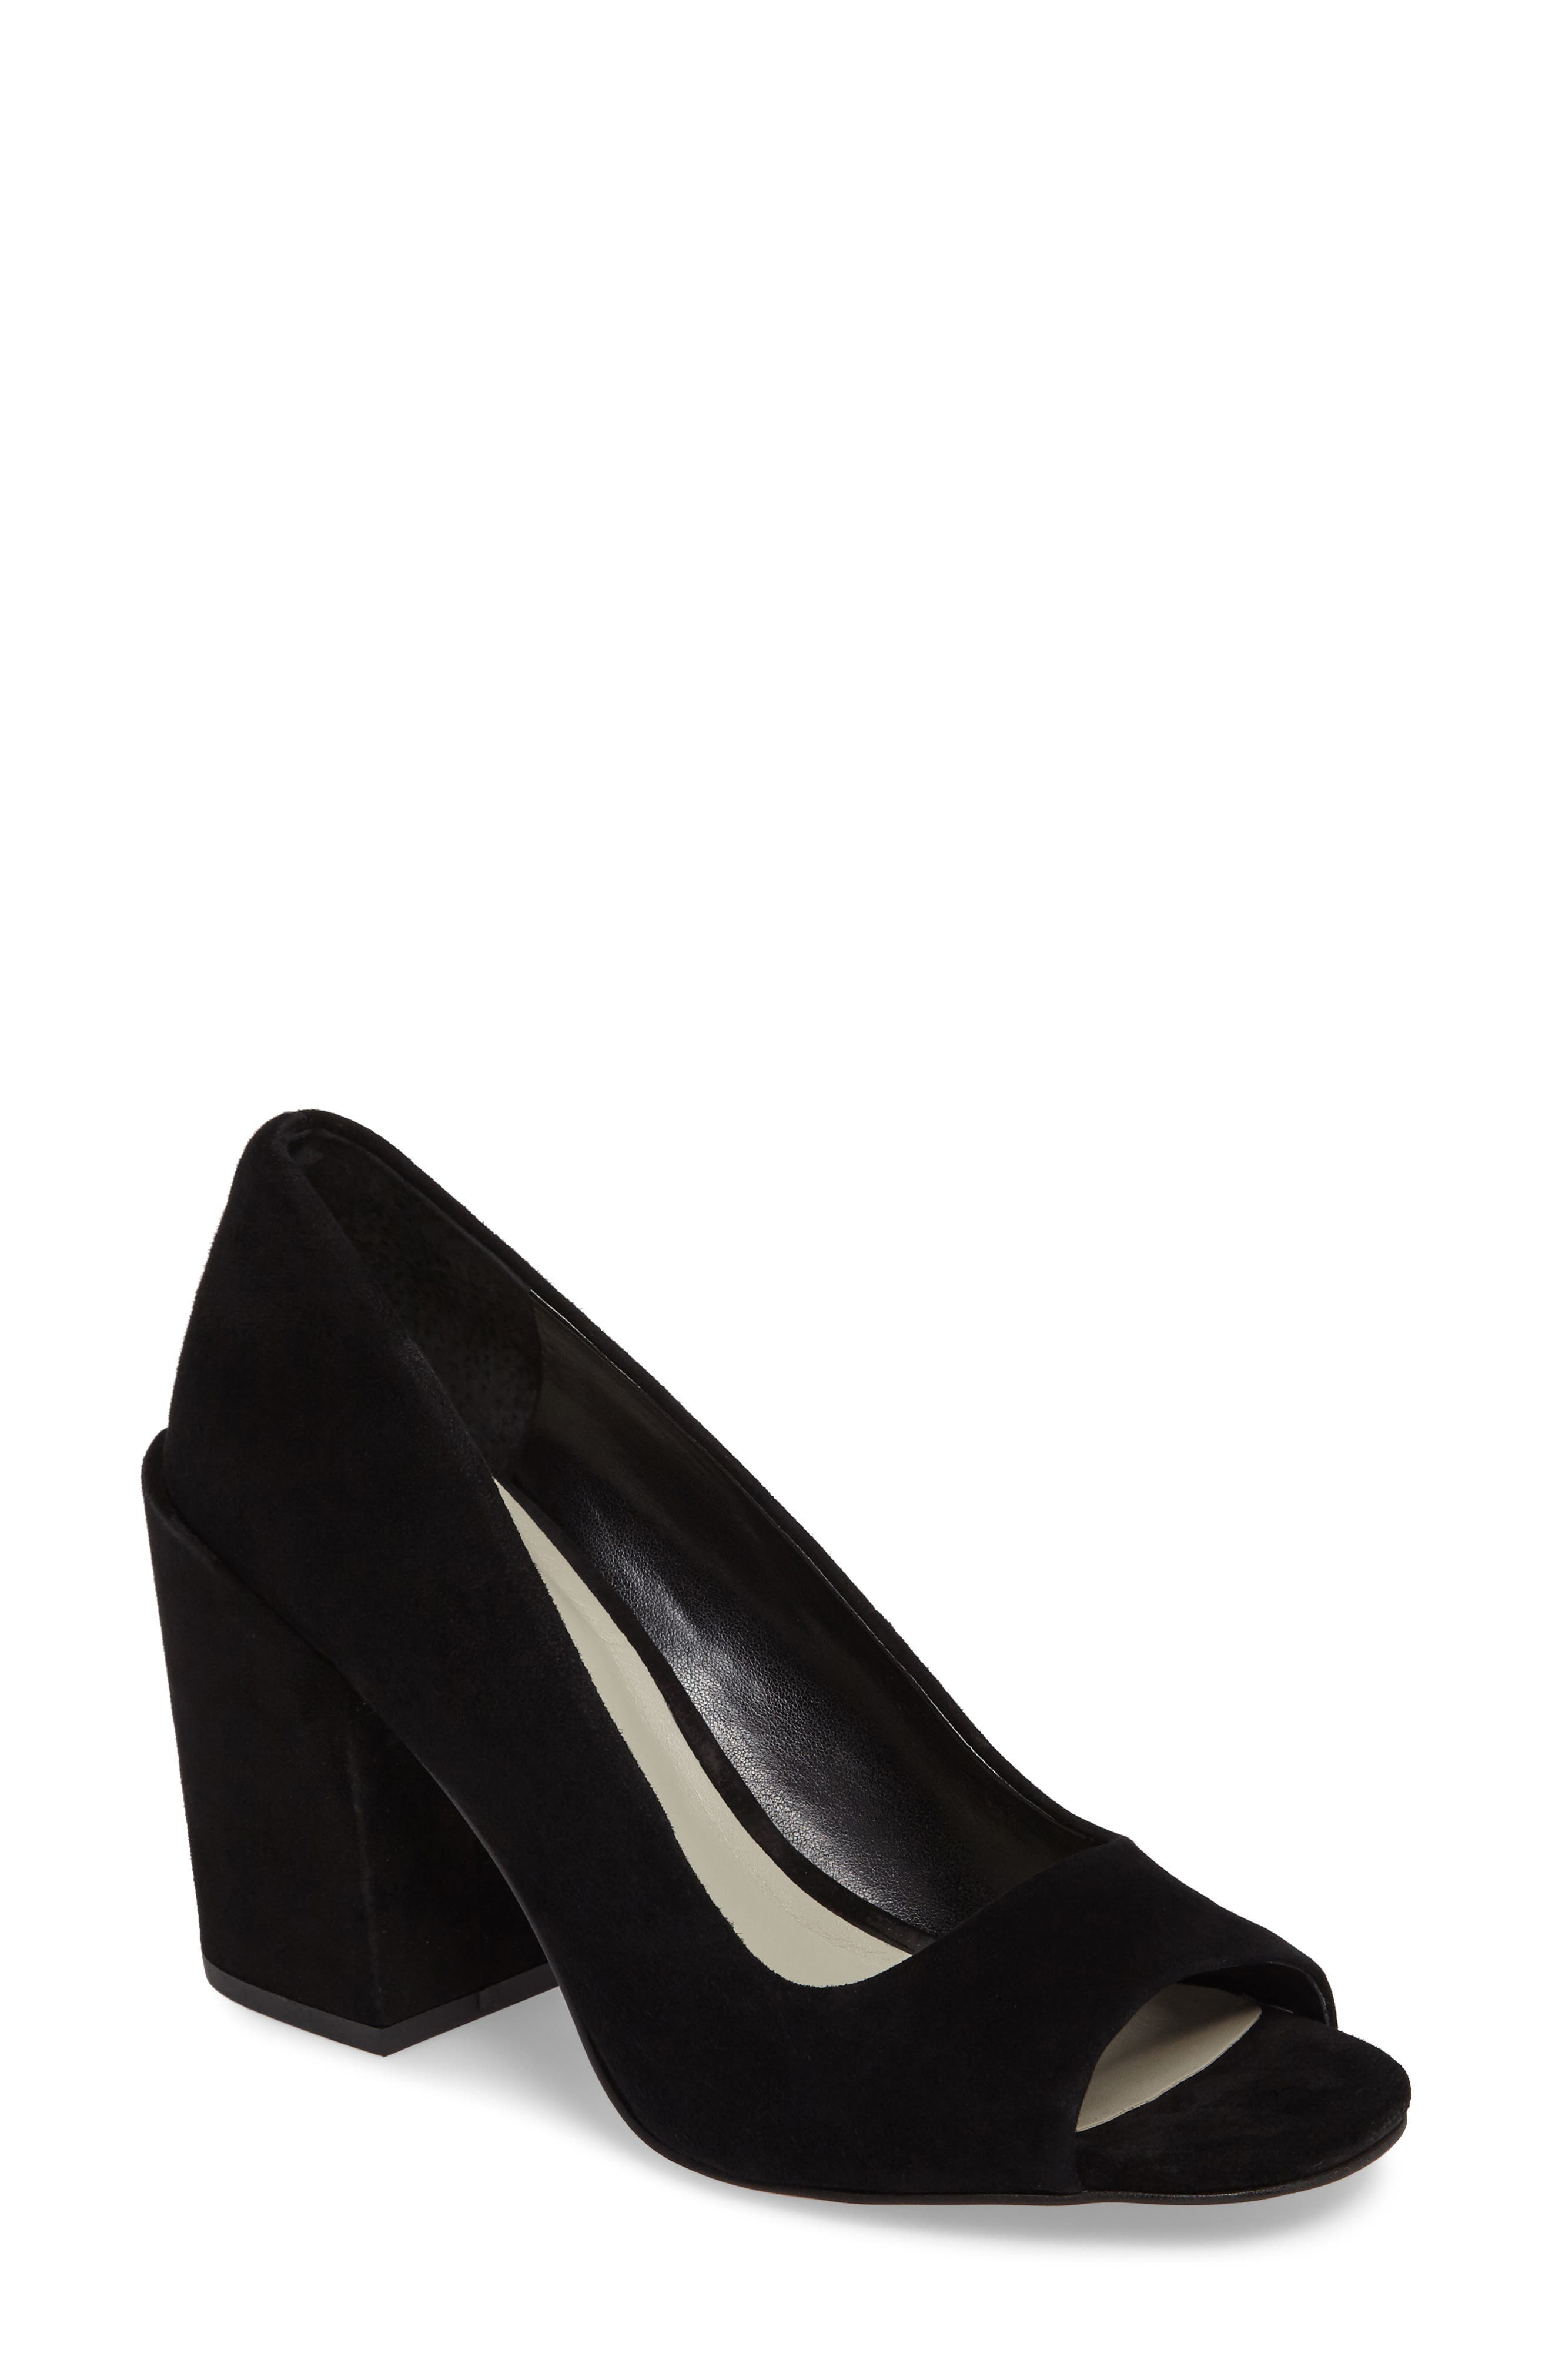 Alternate Image 1 Selected - 1.STATE Rianne Pump (Women)